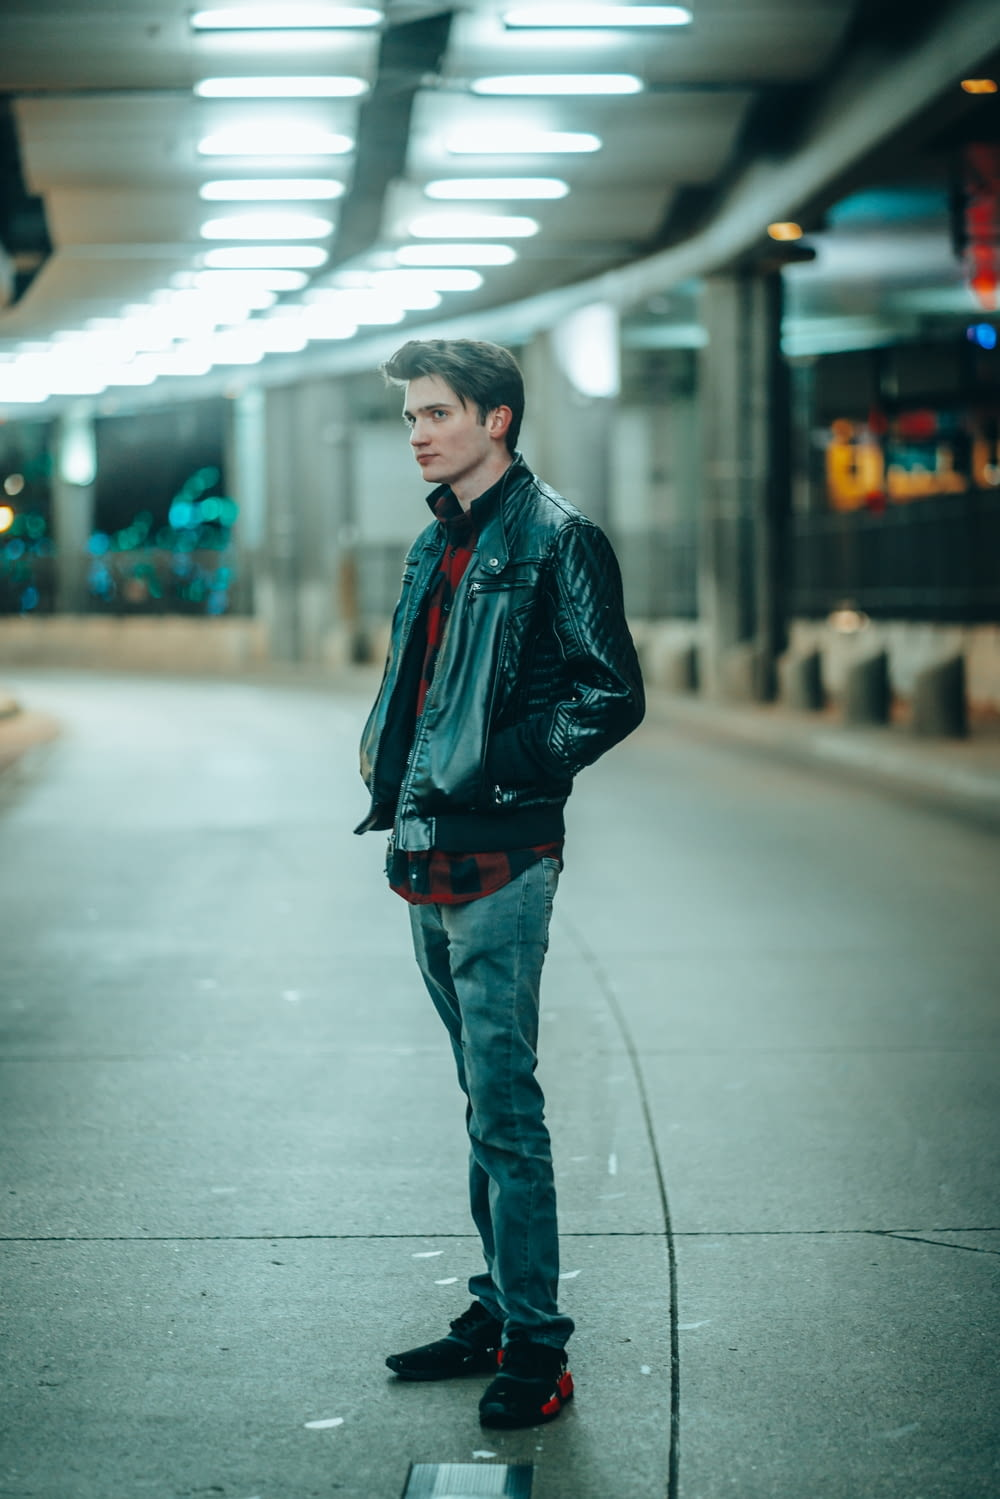 man in black leather jacket standing on sidewalk during daytime